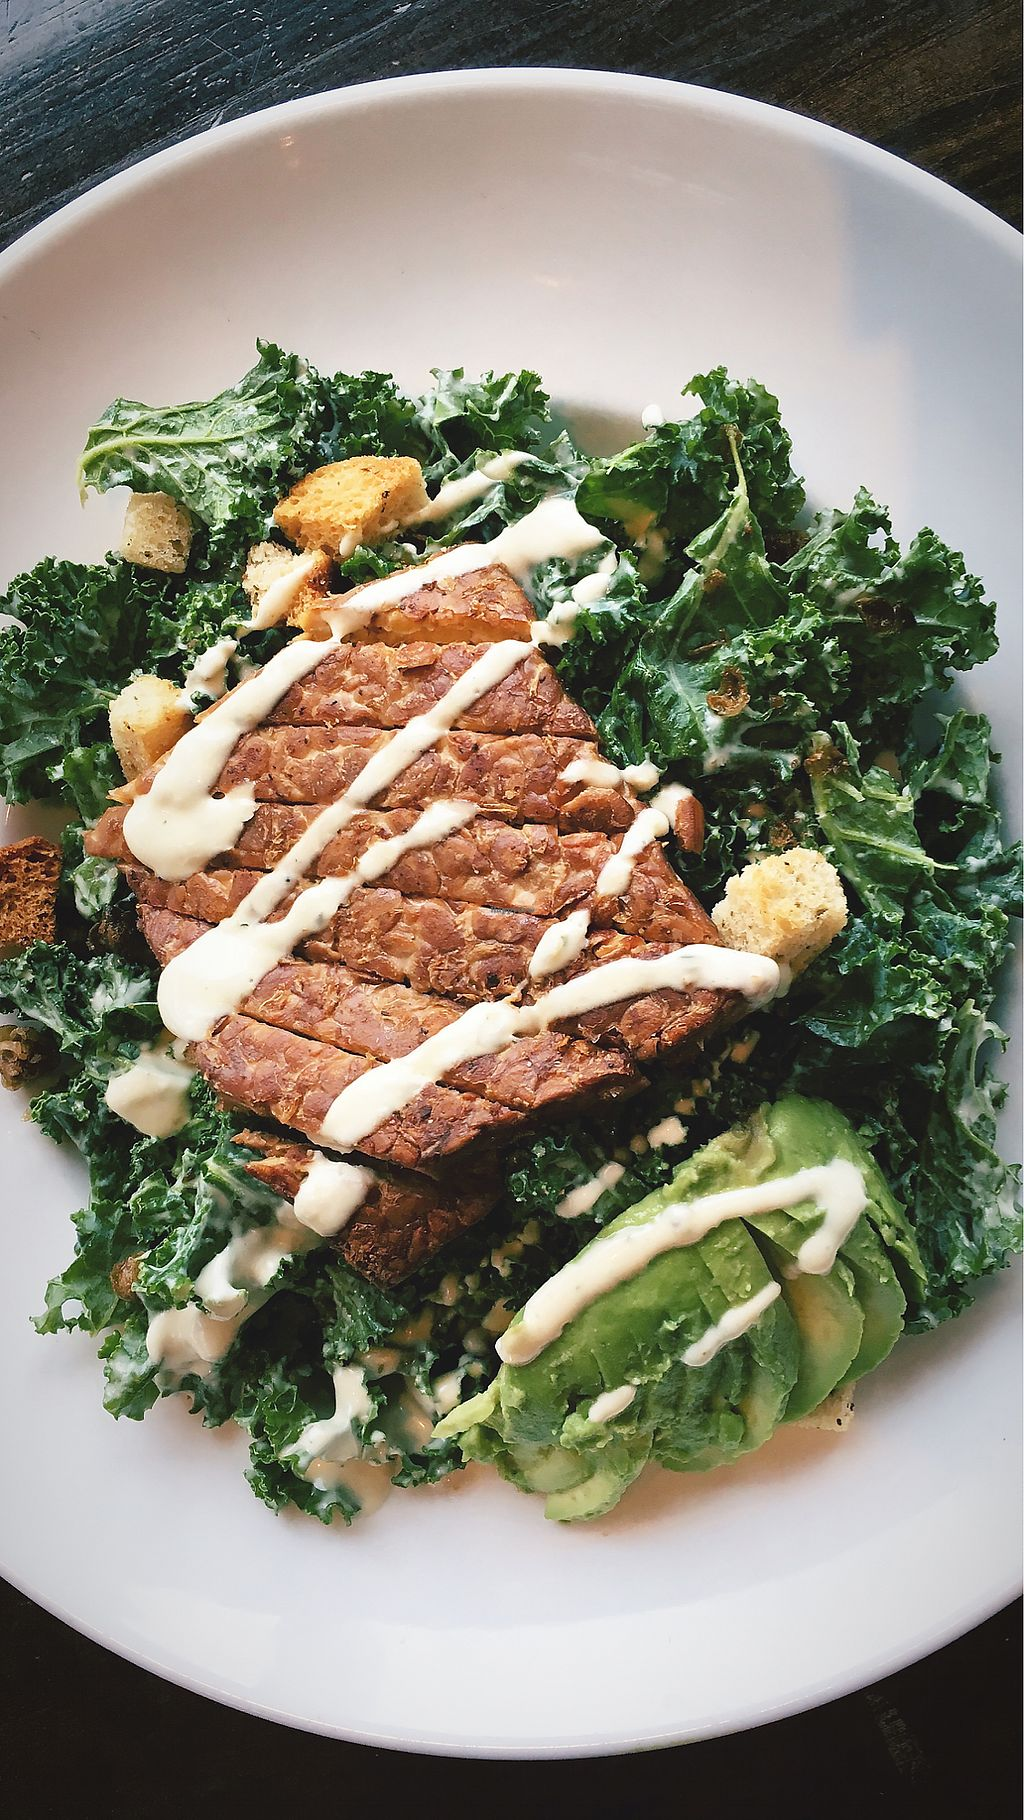 """Photo of Garibaldi Lift Co Bar & Grill  by <a href=""""/members/profile/clovely.vegan"""">clovely.vegan</a> <br/>Grilled Tempeh Kale Caesar Salad <br/> February 23, 2018  - <a href='/contact/abuse/image/96793/362755'>Report</a>"""